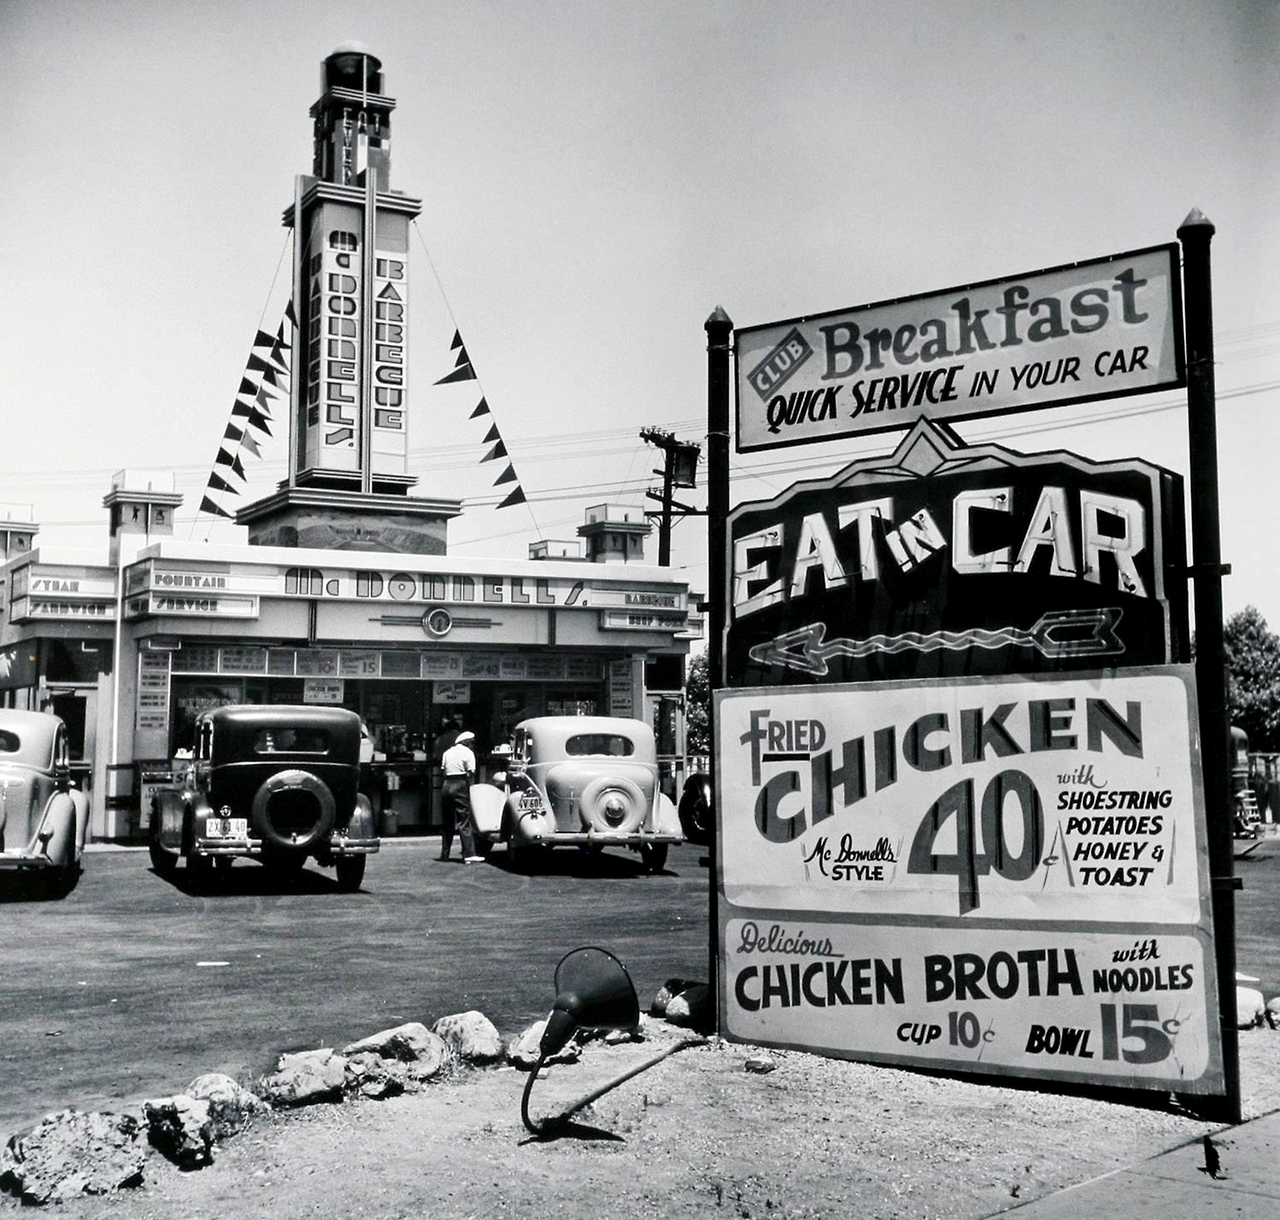 eat in car, (early drive-in restaurant) hollywood ca, 1935.john